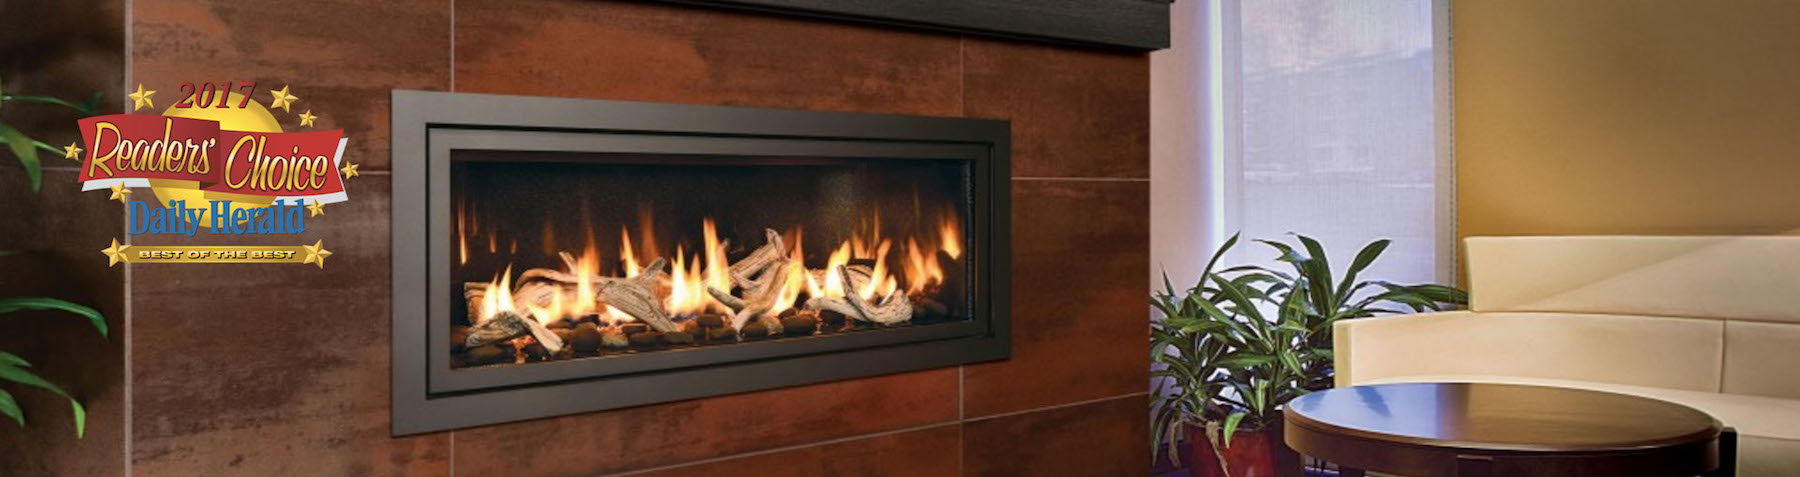 chicago fireplace u0026 patio furniture store arlington heights